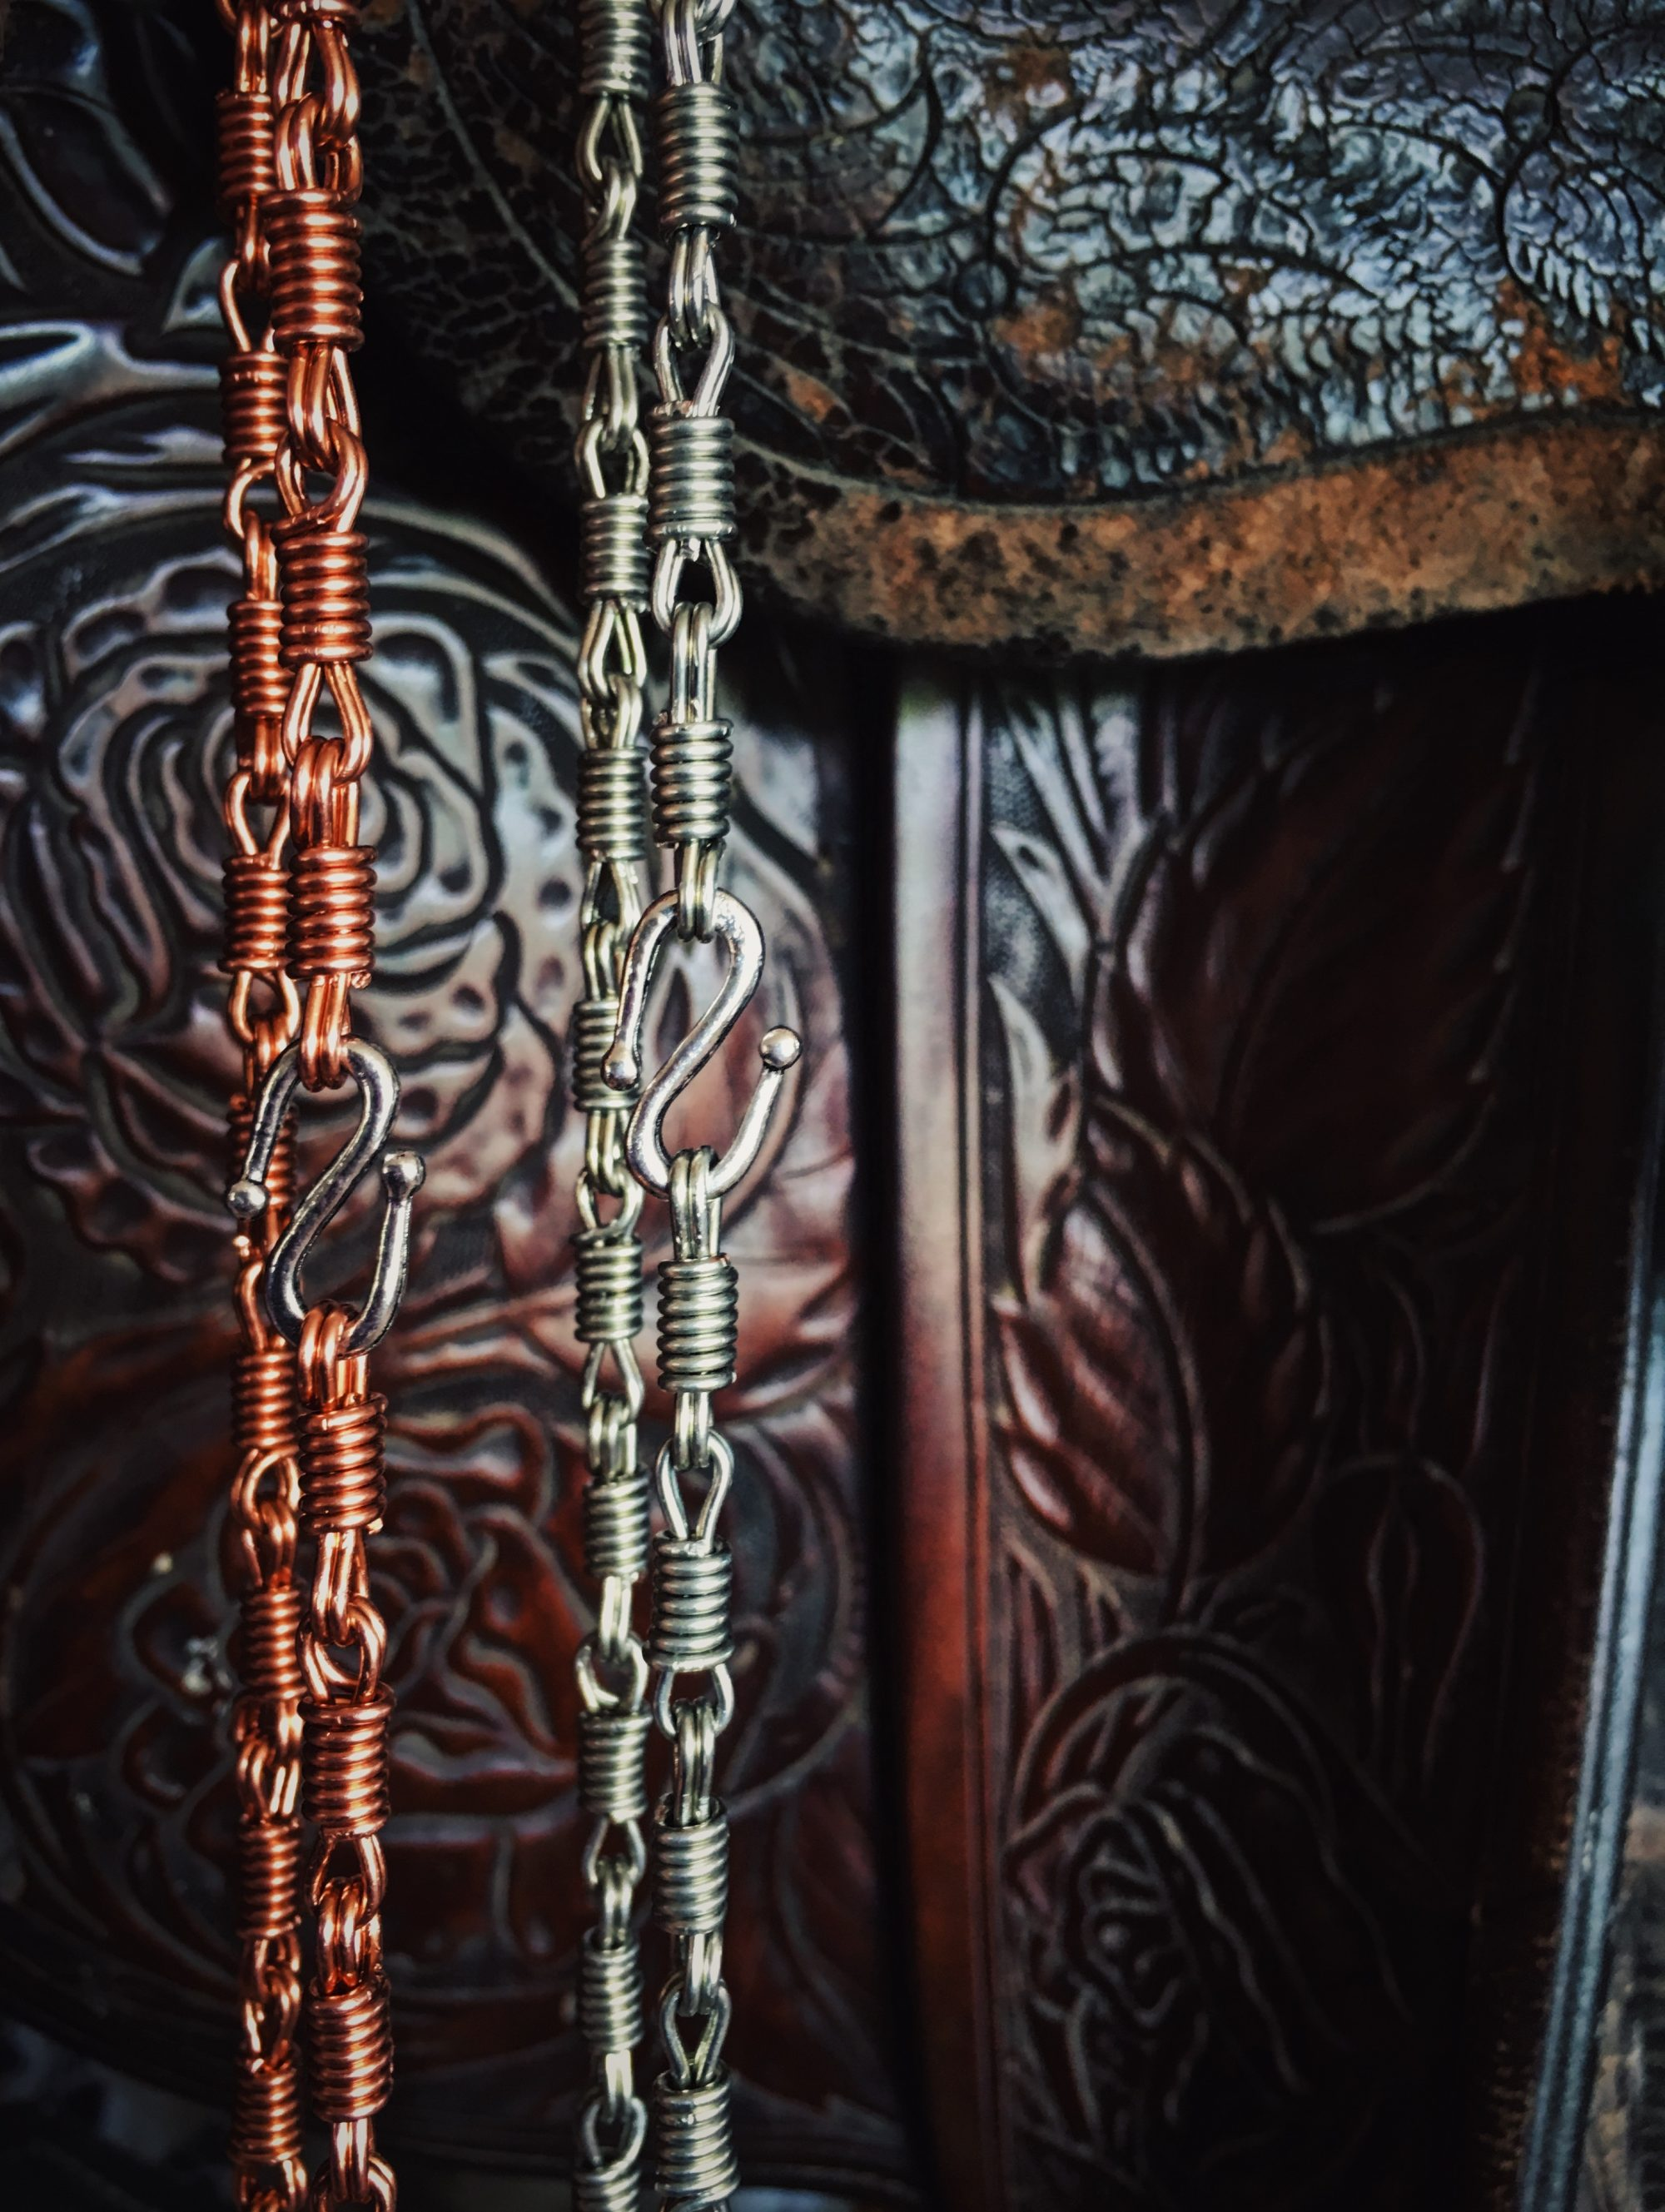 Ceily Rae Photography & Design Products Copper Rein Chain Bracelets Western Jewelry